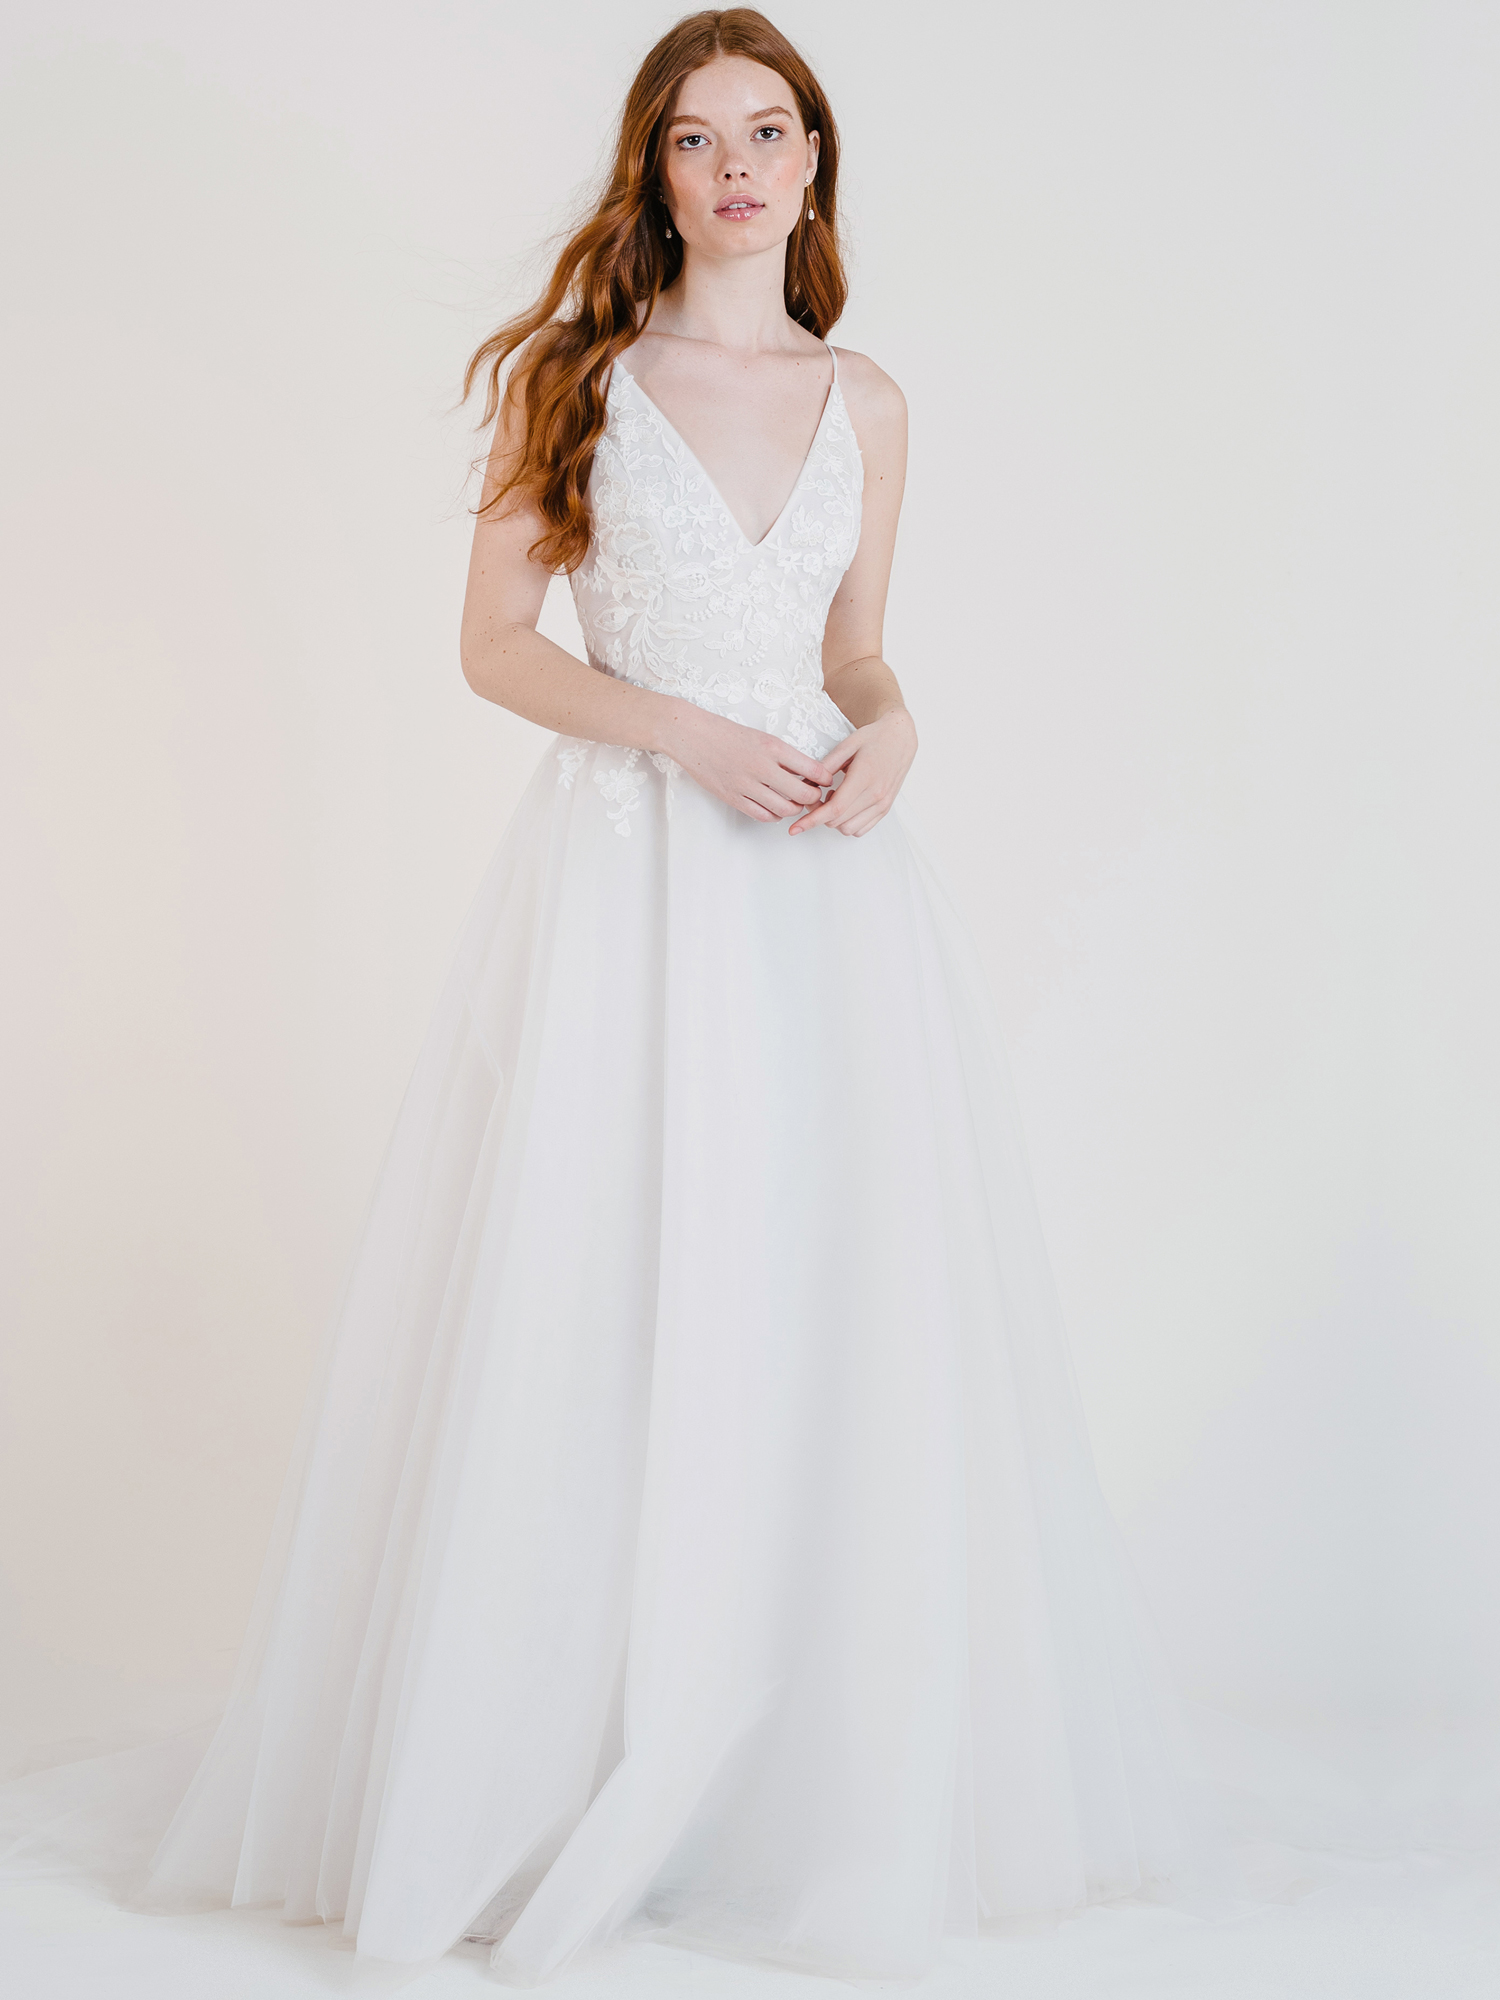 jenny by jenny yoo v-neck lace bodice a-line wedding dress fall 2020